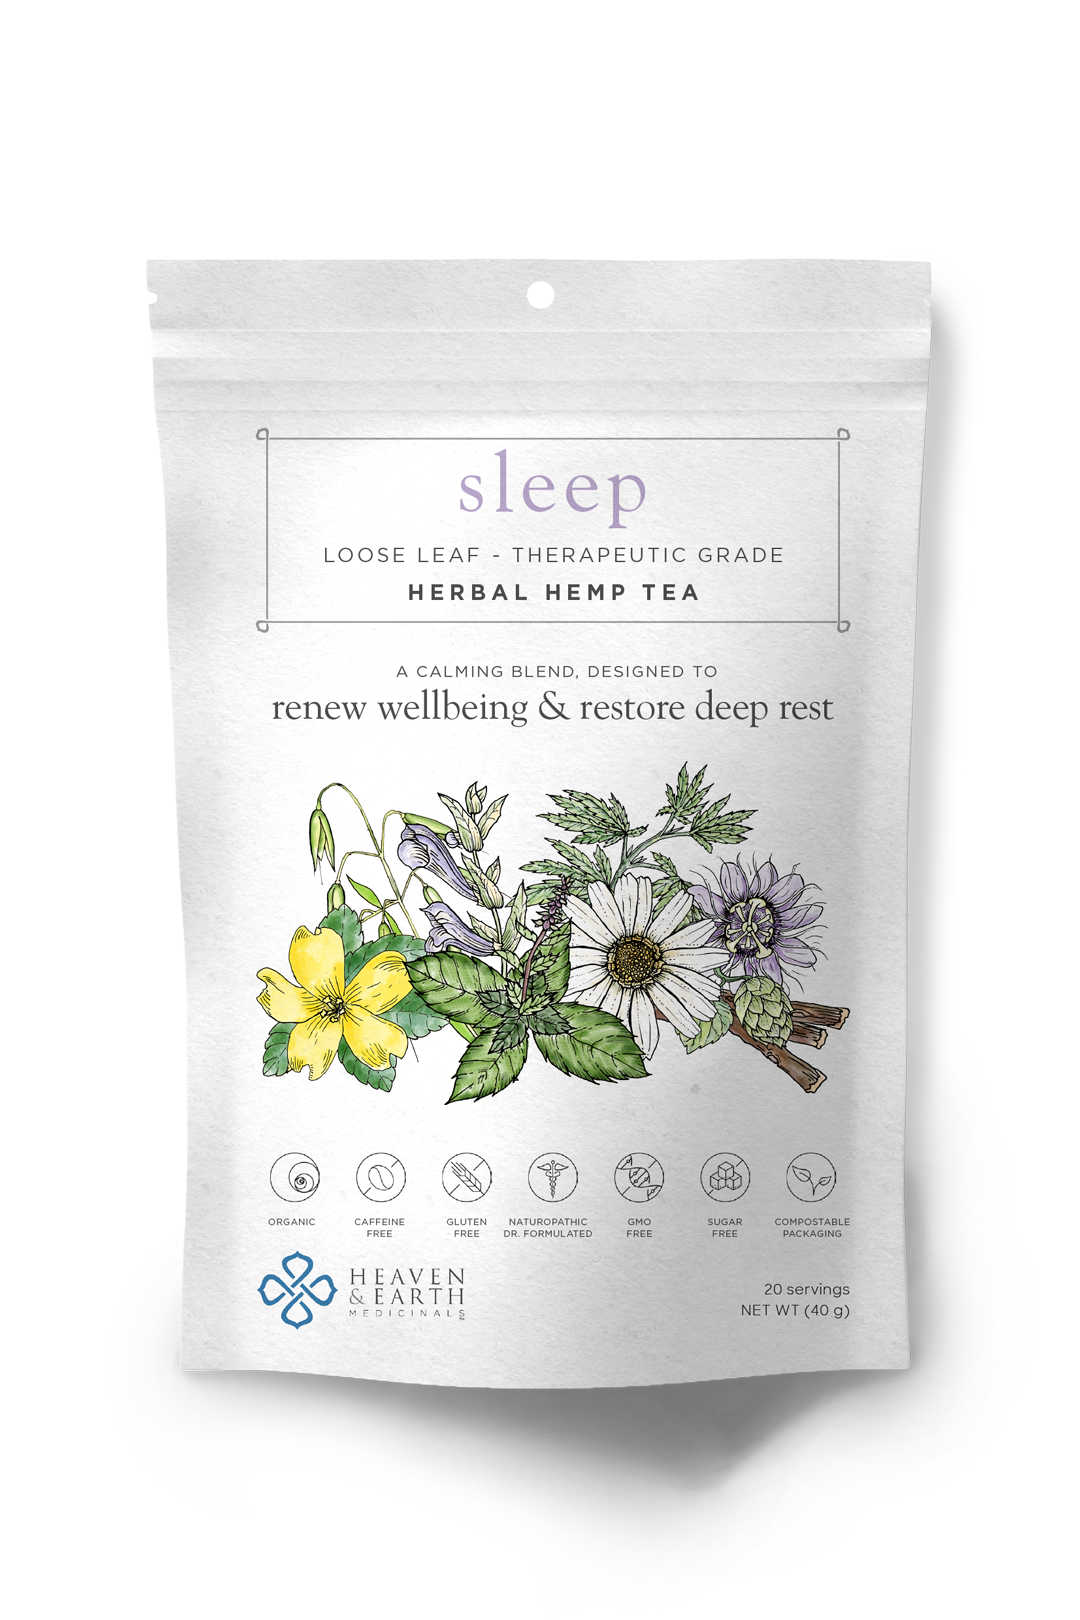 sleep hemp tea